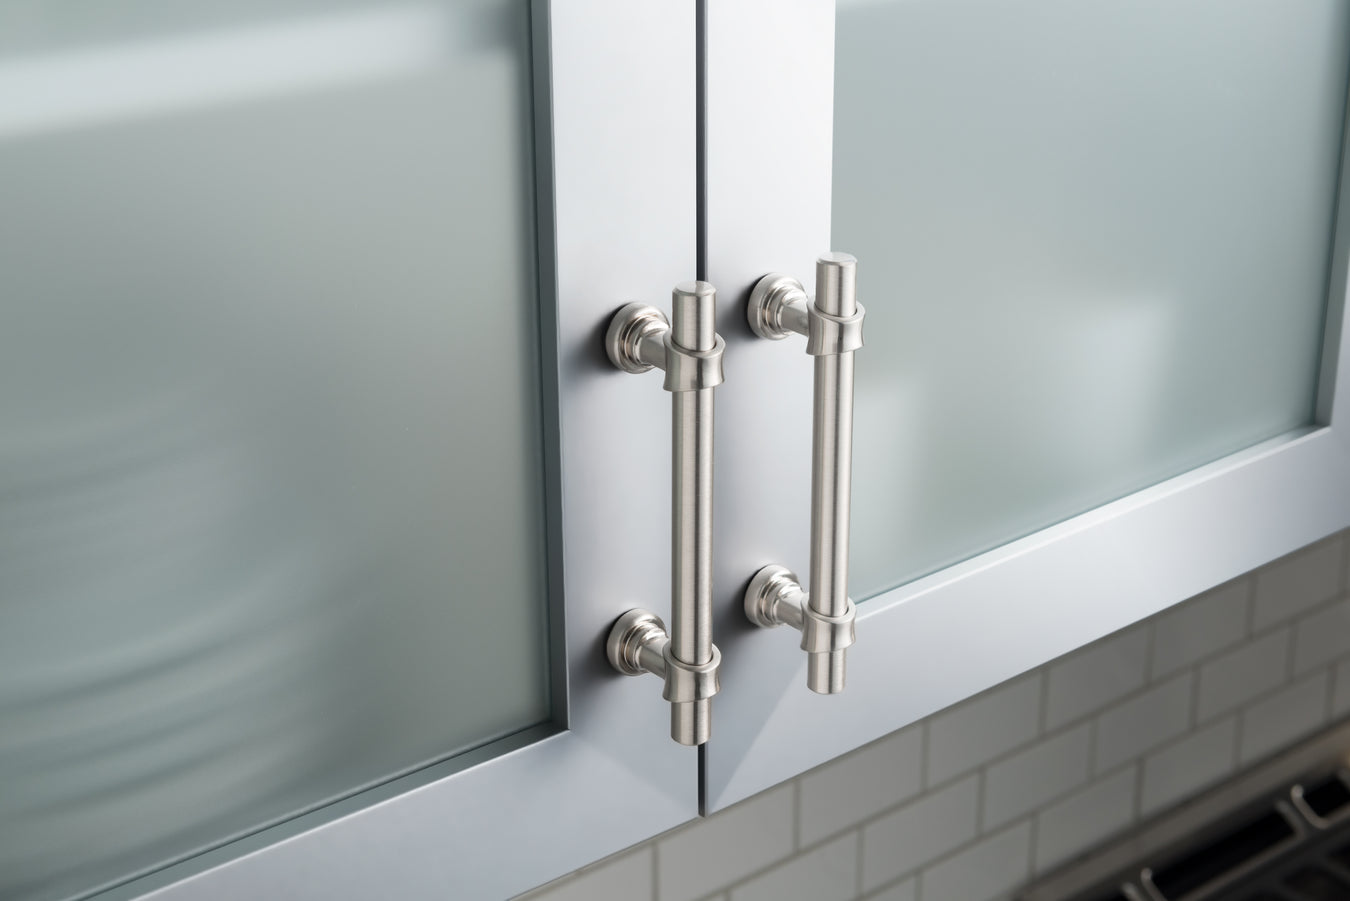 Buy Discount Kitchen Cabinet And Bathroom Hardware